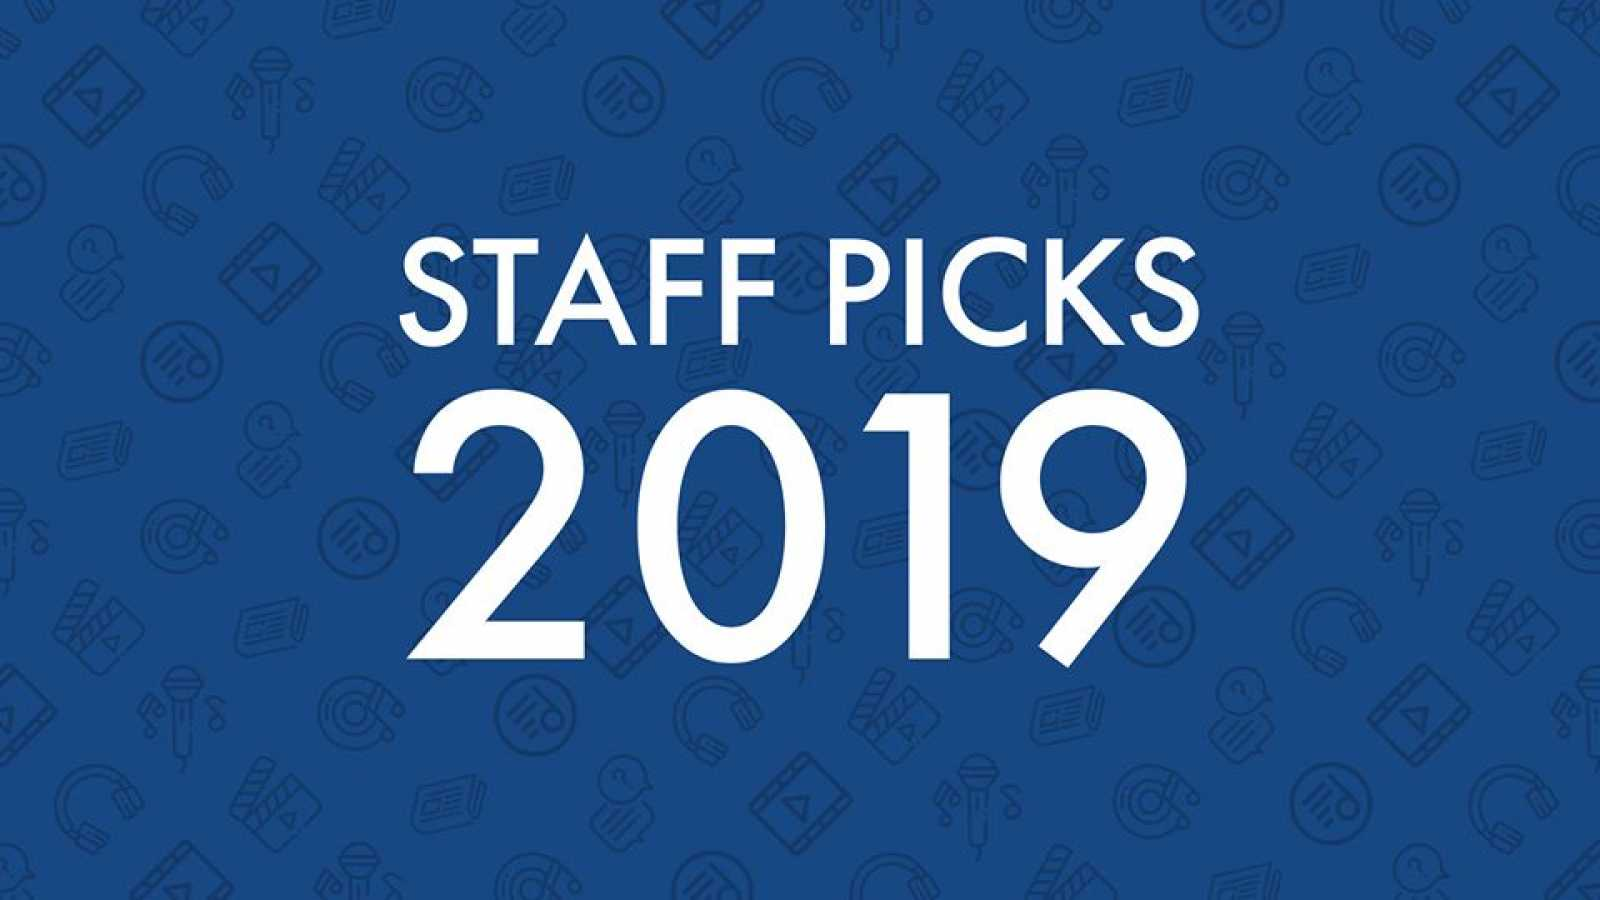 JaME's Staff Picks 2019 Playlist © JaME